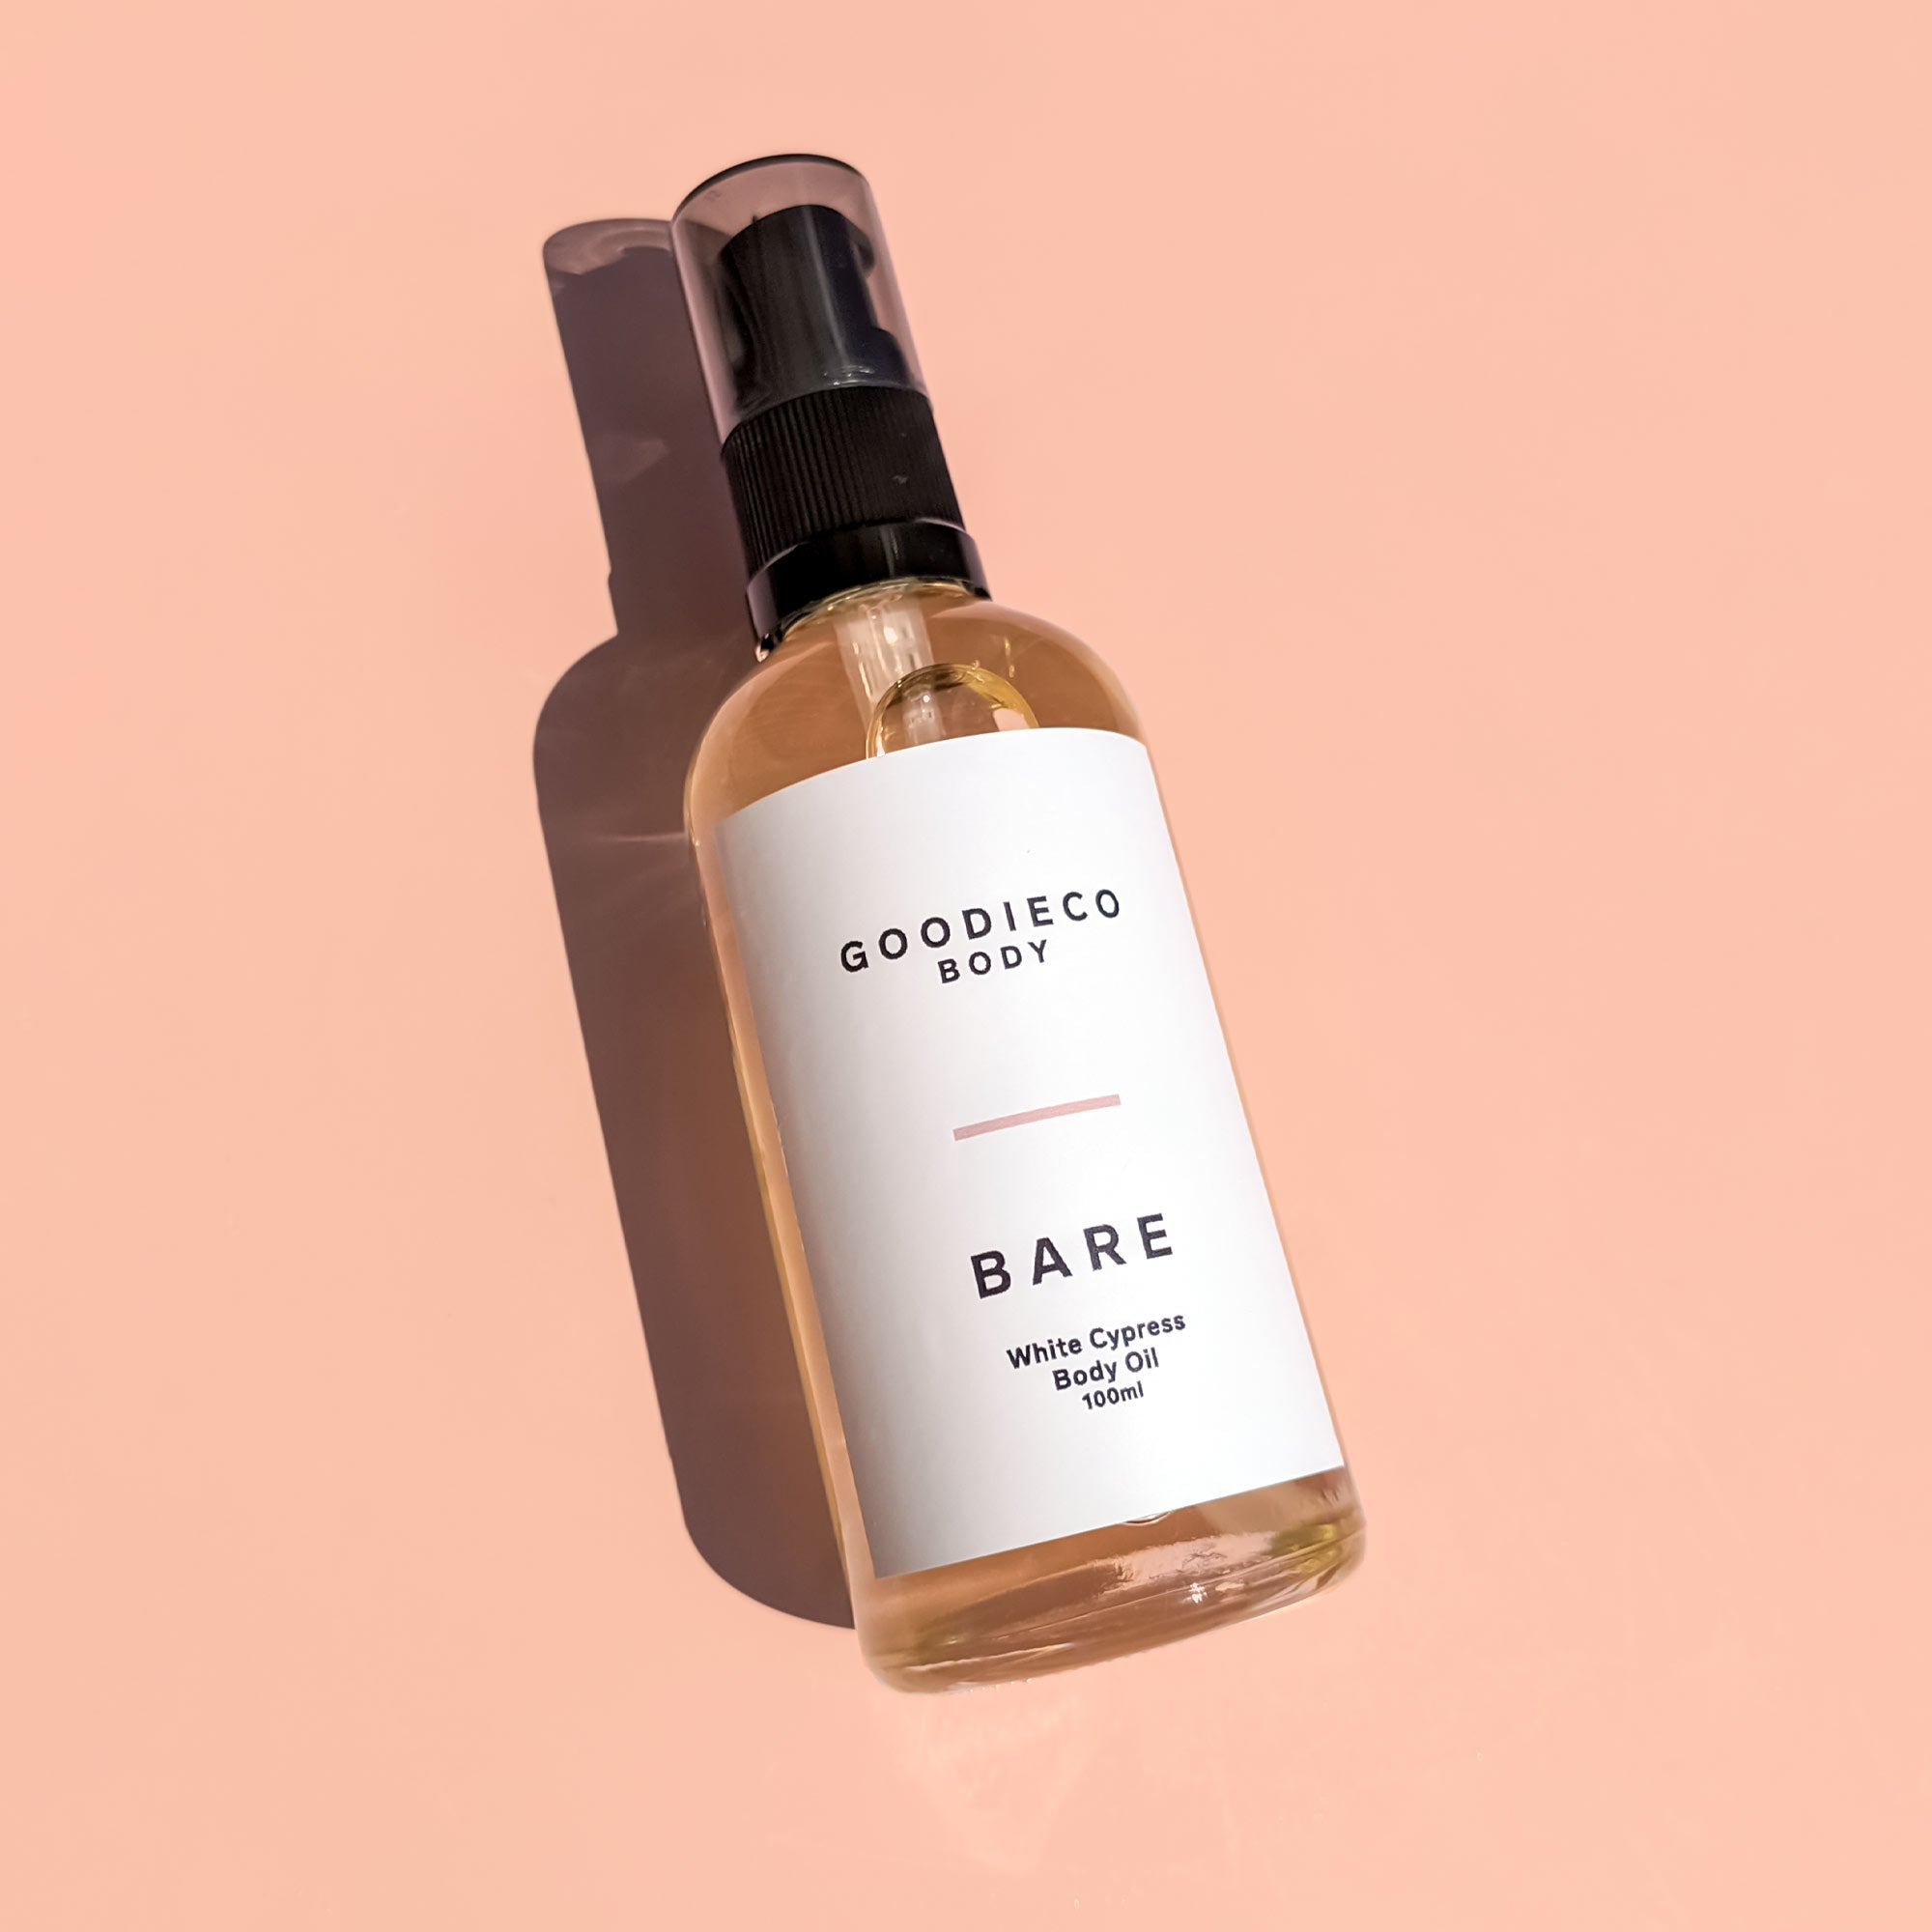 Bare | White Cypress Body Oil